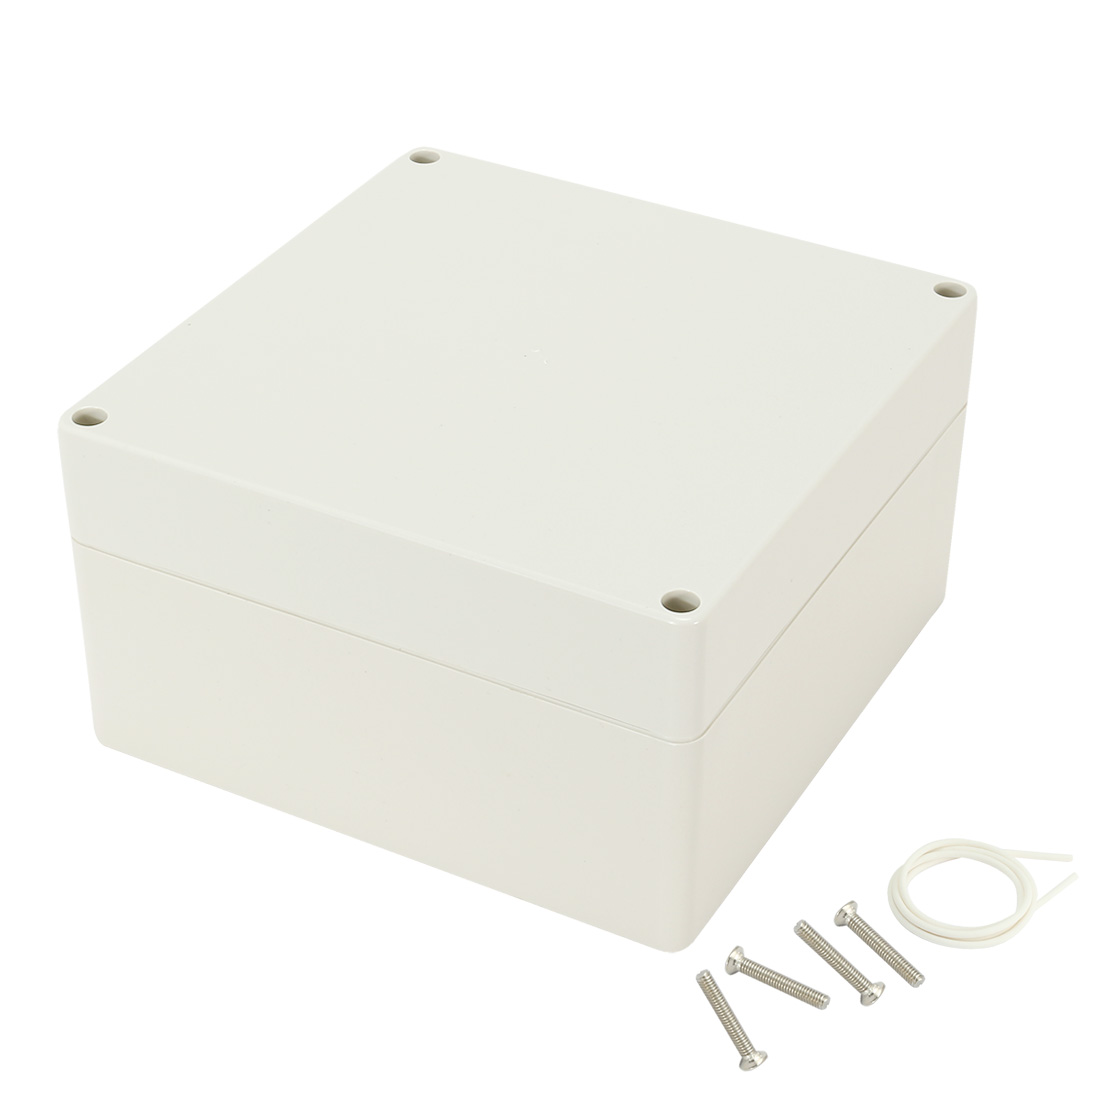 "6.3""x6.3""x3.54"" (160mmx160mmx90mm) ABS Junction Box Universal Electric Project Enclosure"